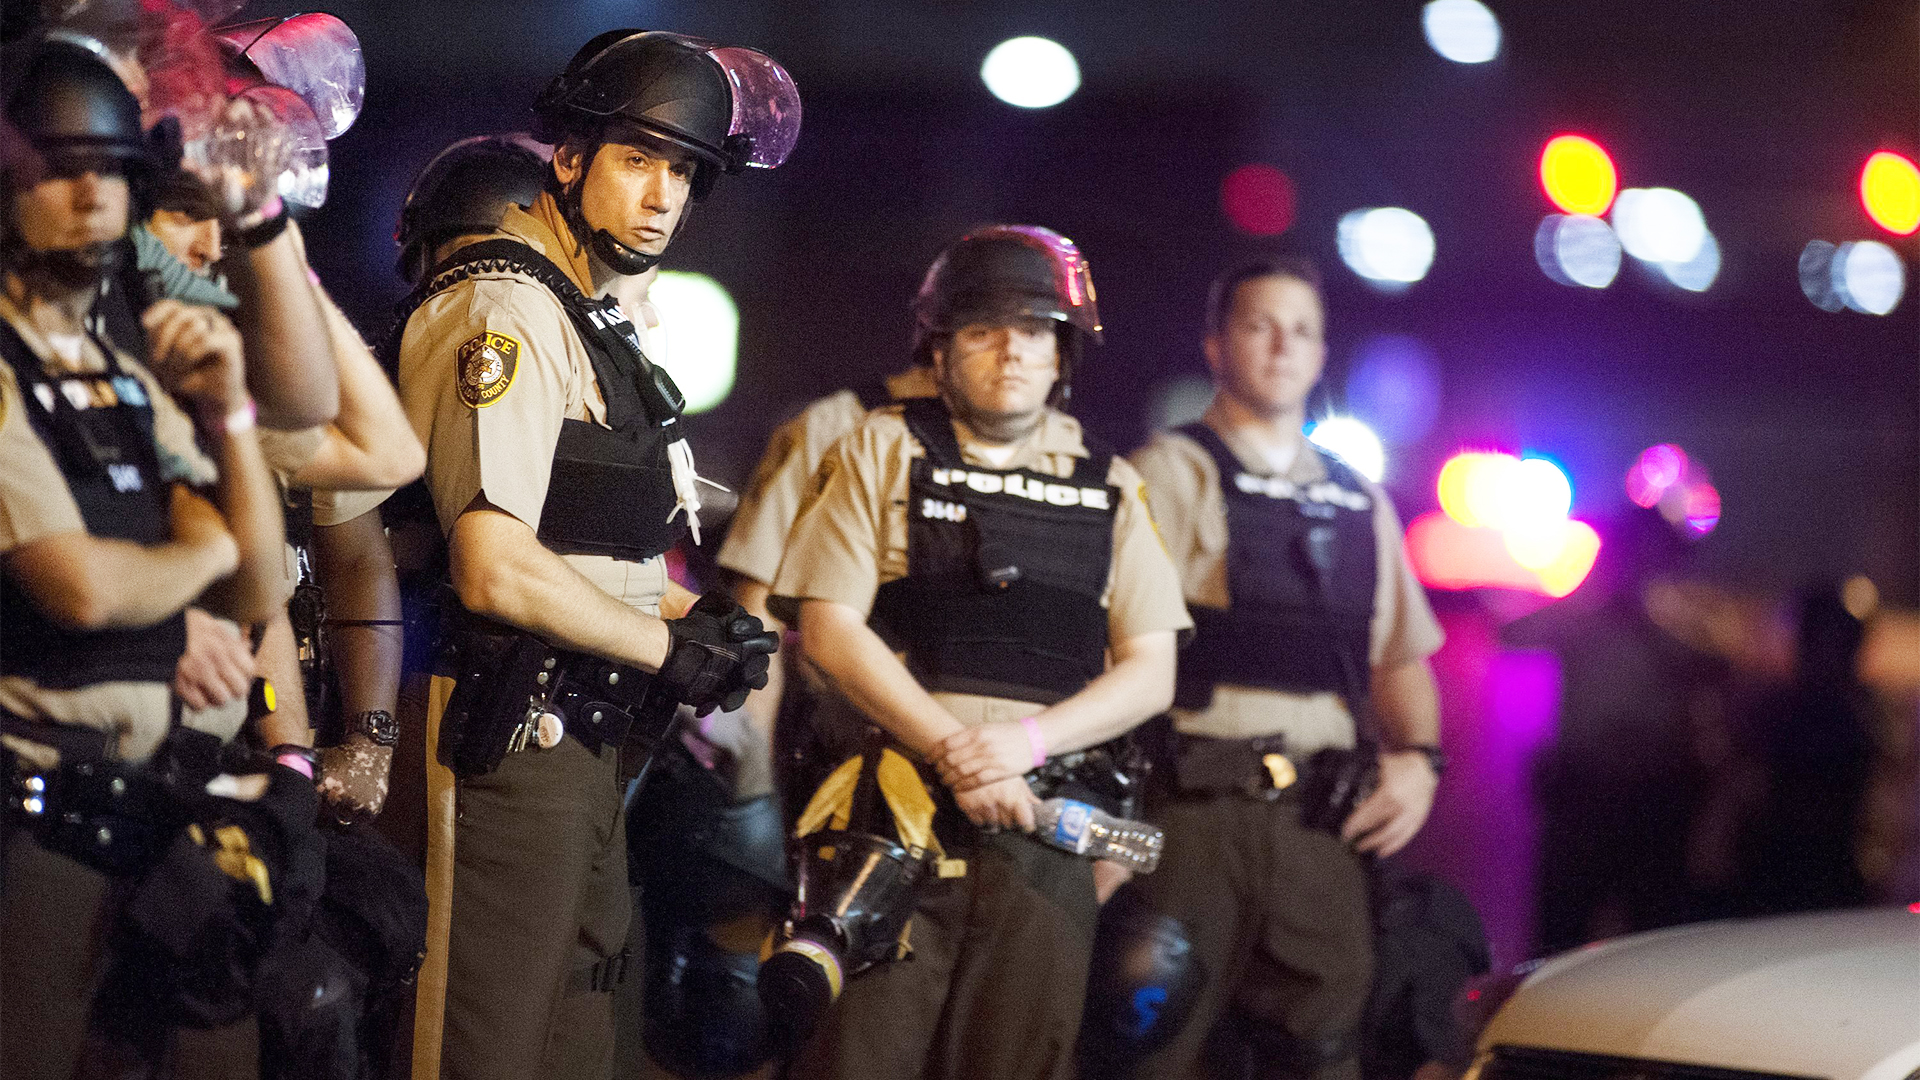 Michael Brown Anniversary: Police Shoot Suspect in Ferguson, Missouri